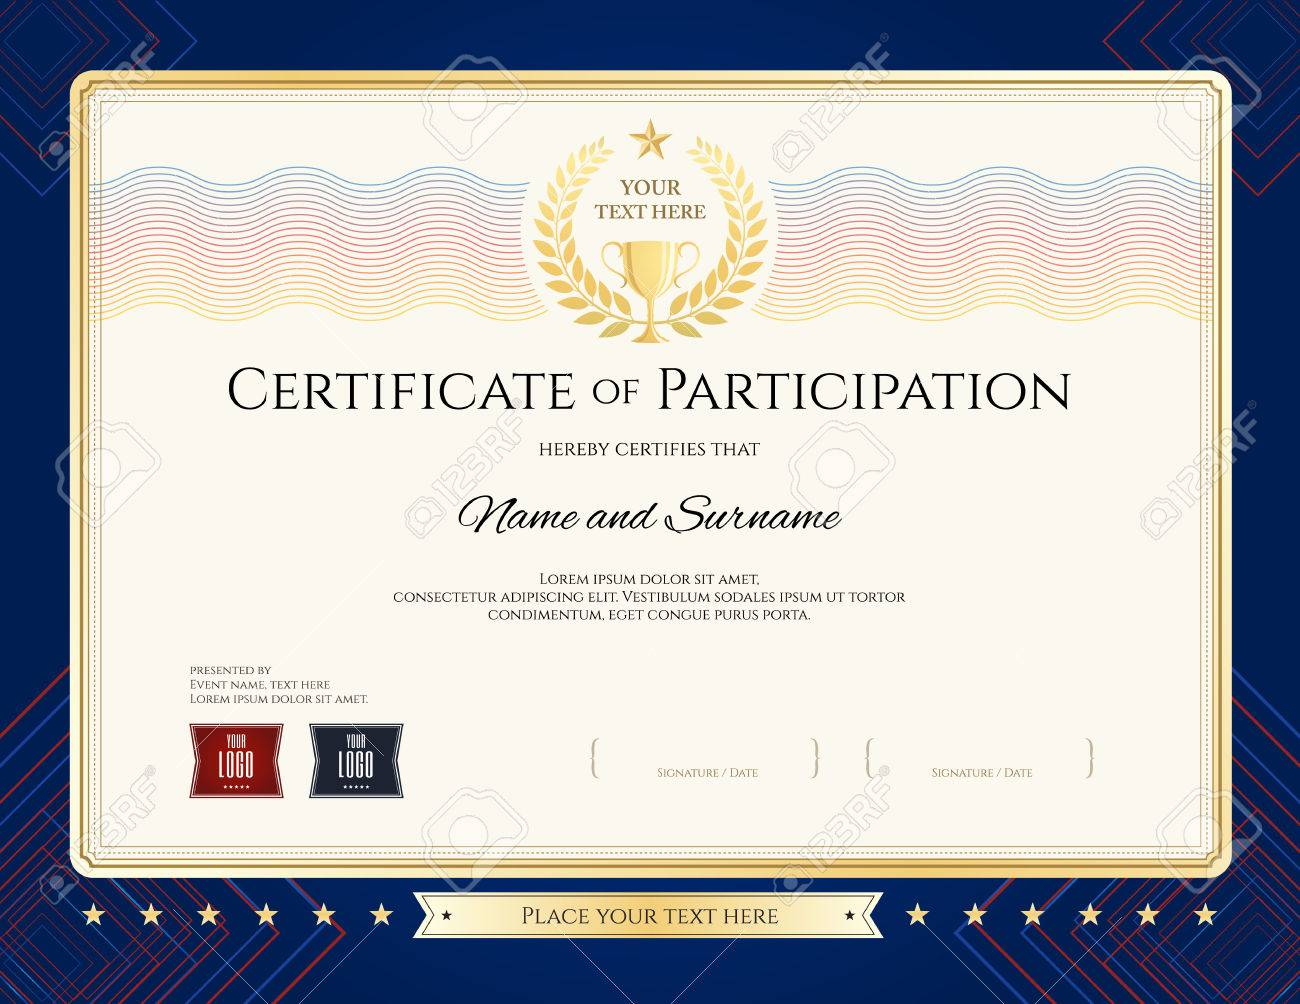 Modern Certificate Of Participation Template With Colorful Wave ...